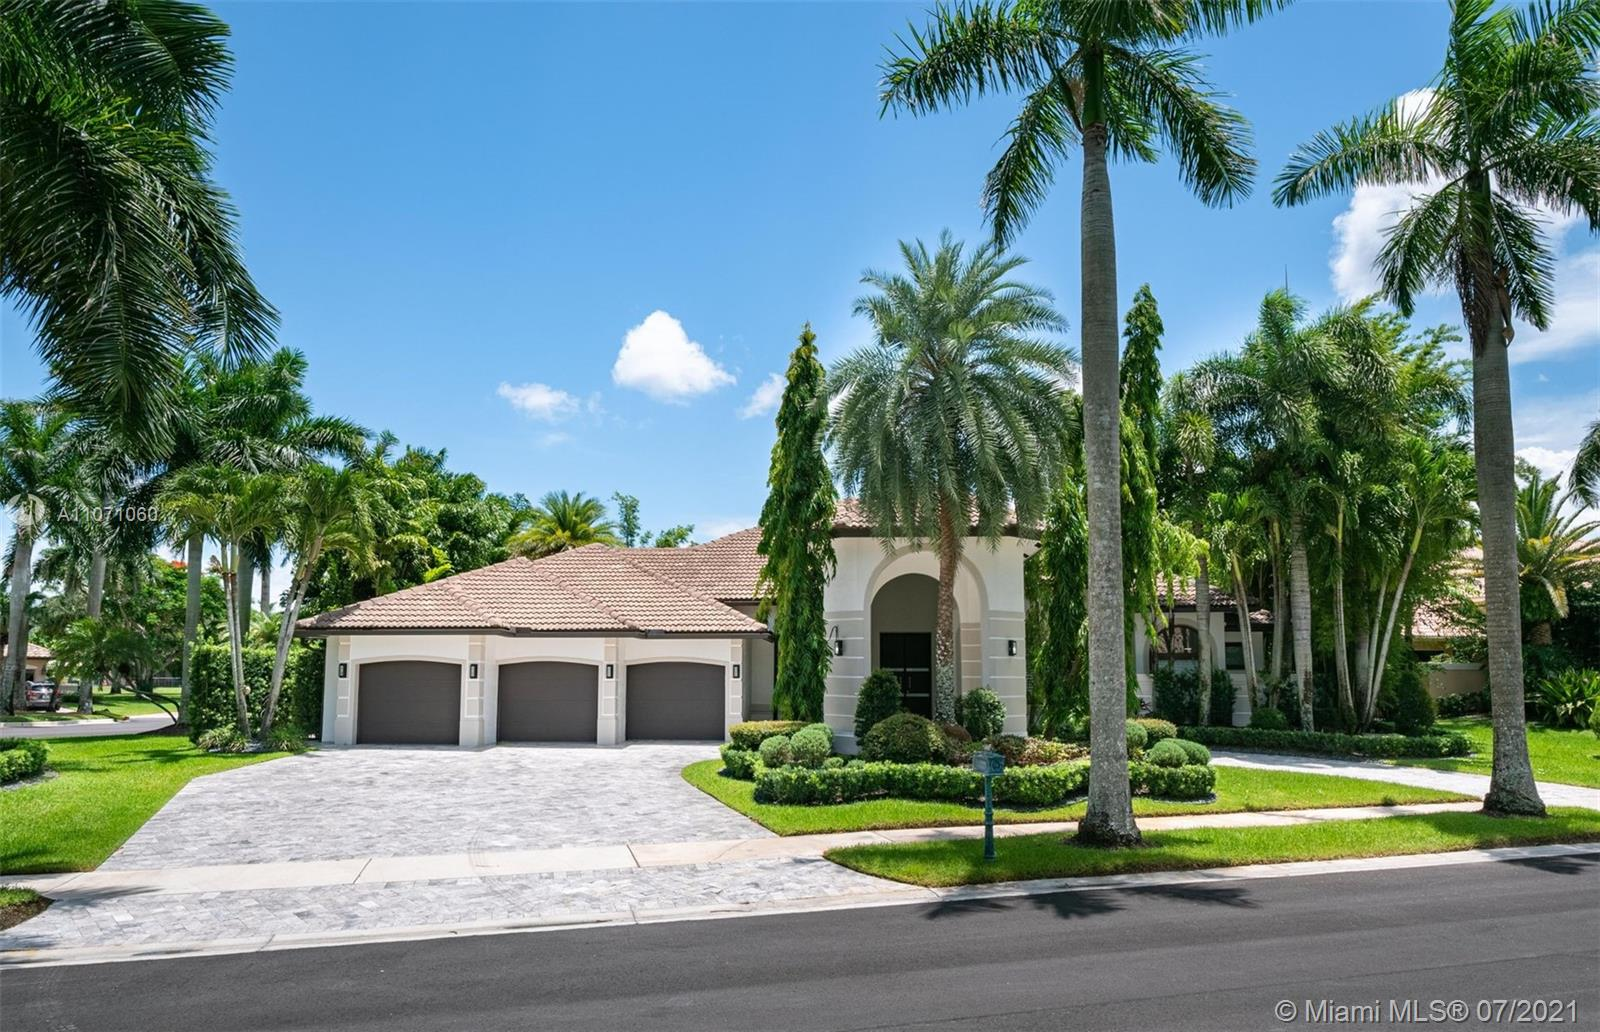 This Smart Home Is Immaculate and Fully Remodeled. Sound System, Cameras and Speakers by SONOS in The Entire Home. Featuring 5 BR/5.5 BA/Office/Gym/Sauna. Perfectly Set on a 1/2+ acres lot.  Designer Bathrooms, Top-of-the-line GD Italian Kitchen, MIELE Appliances.  Marble Floors, Smooth finish walls, Dry Wall Ceiling Designs with LED Lighting. Custom Closets, Cabinetry and Italian Doors. High-End Motorized Window Treatments. New Fast-Speed Pool Heater Pump, 4 AC units, Double-Pane Impact Windows & Central Vacuum are Some of The Features. Enjoy The Fully Fenced Backyard Perfect for Kids (Playground) & Pets. A Unique Outdoor Living Space With A Custom Designed Wood Pergola Fully Equipped (TV & Appliances). A 3-Car Garage with Cabinets/Storage. Stop by this Majestic Porte-Cochere and Come in!